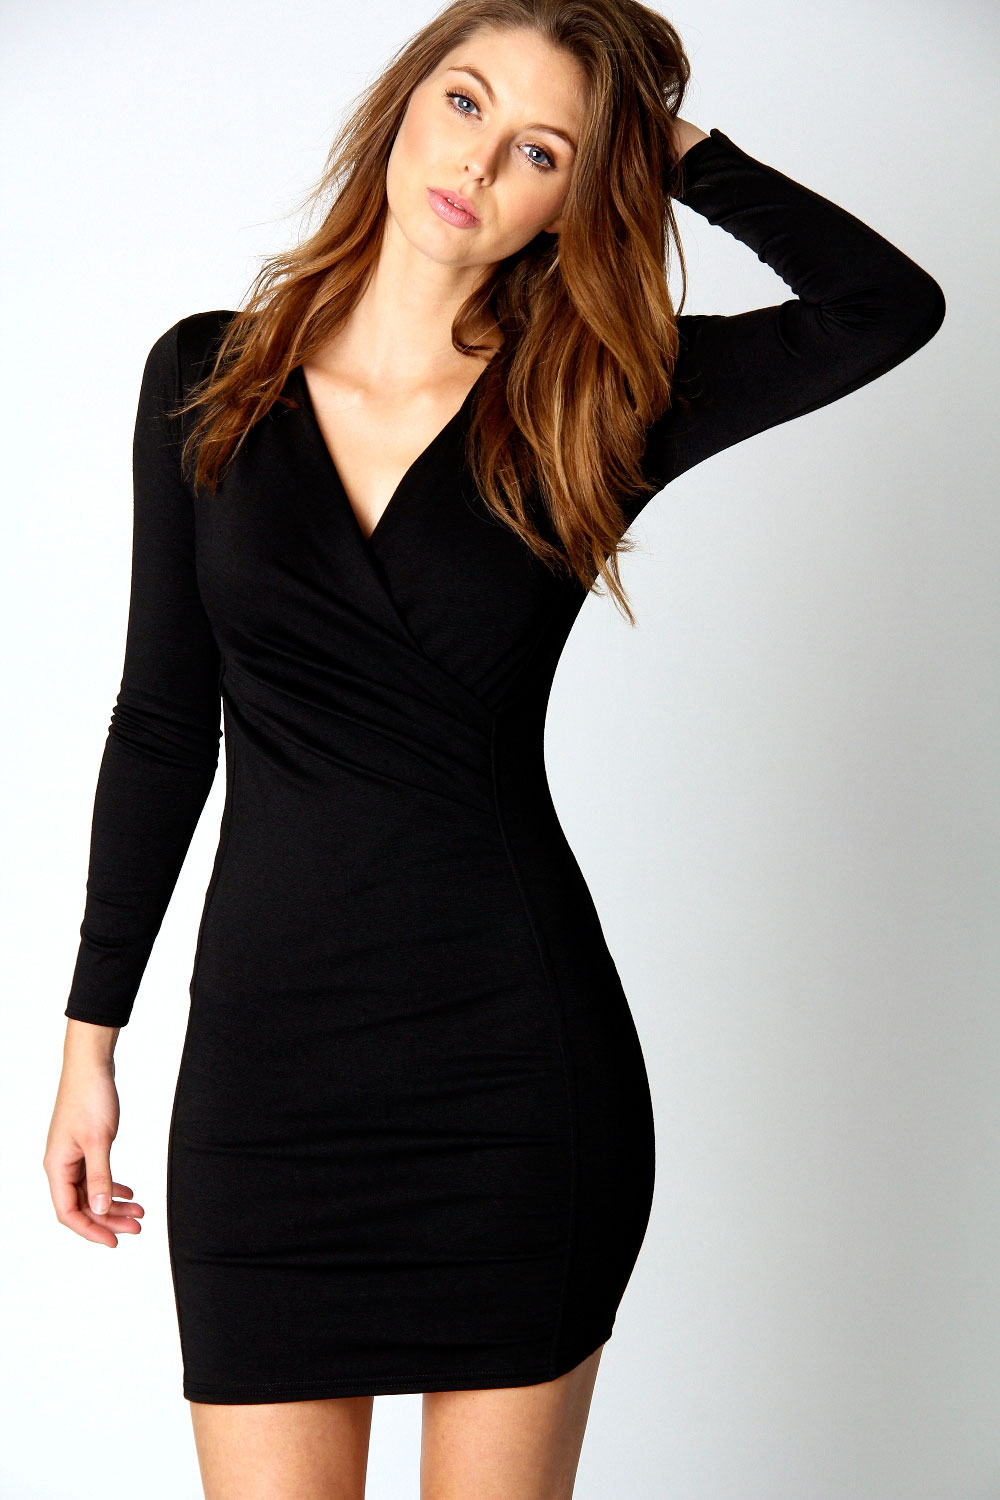 Black Wrap Dress Picture Collection Dressedupgirl Com